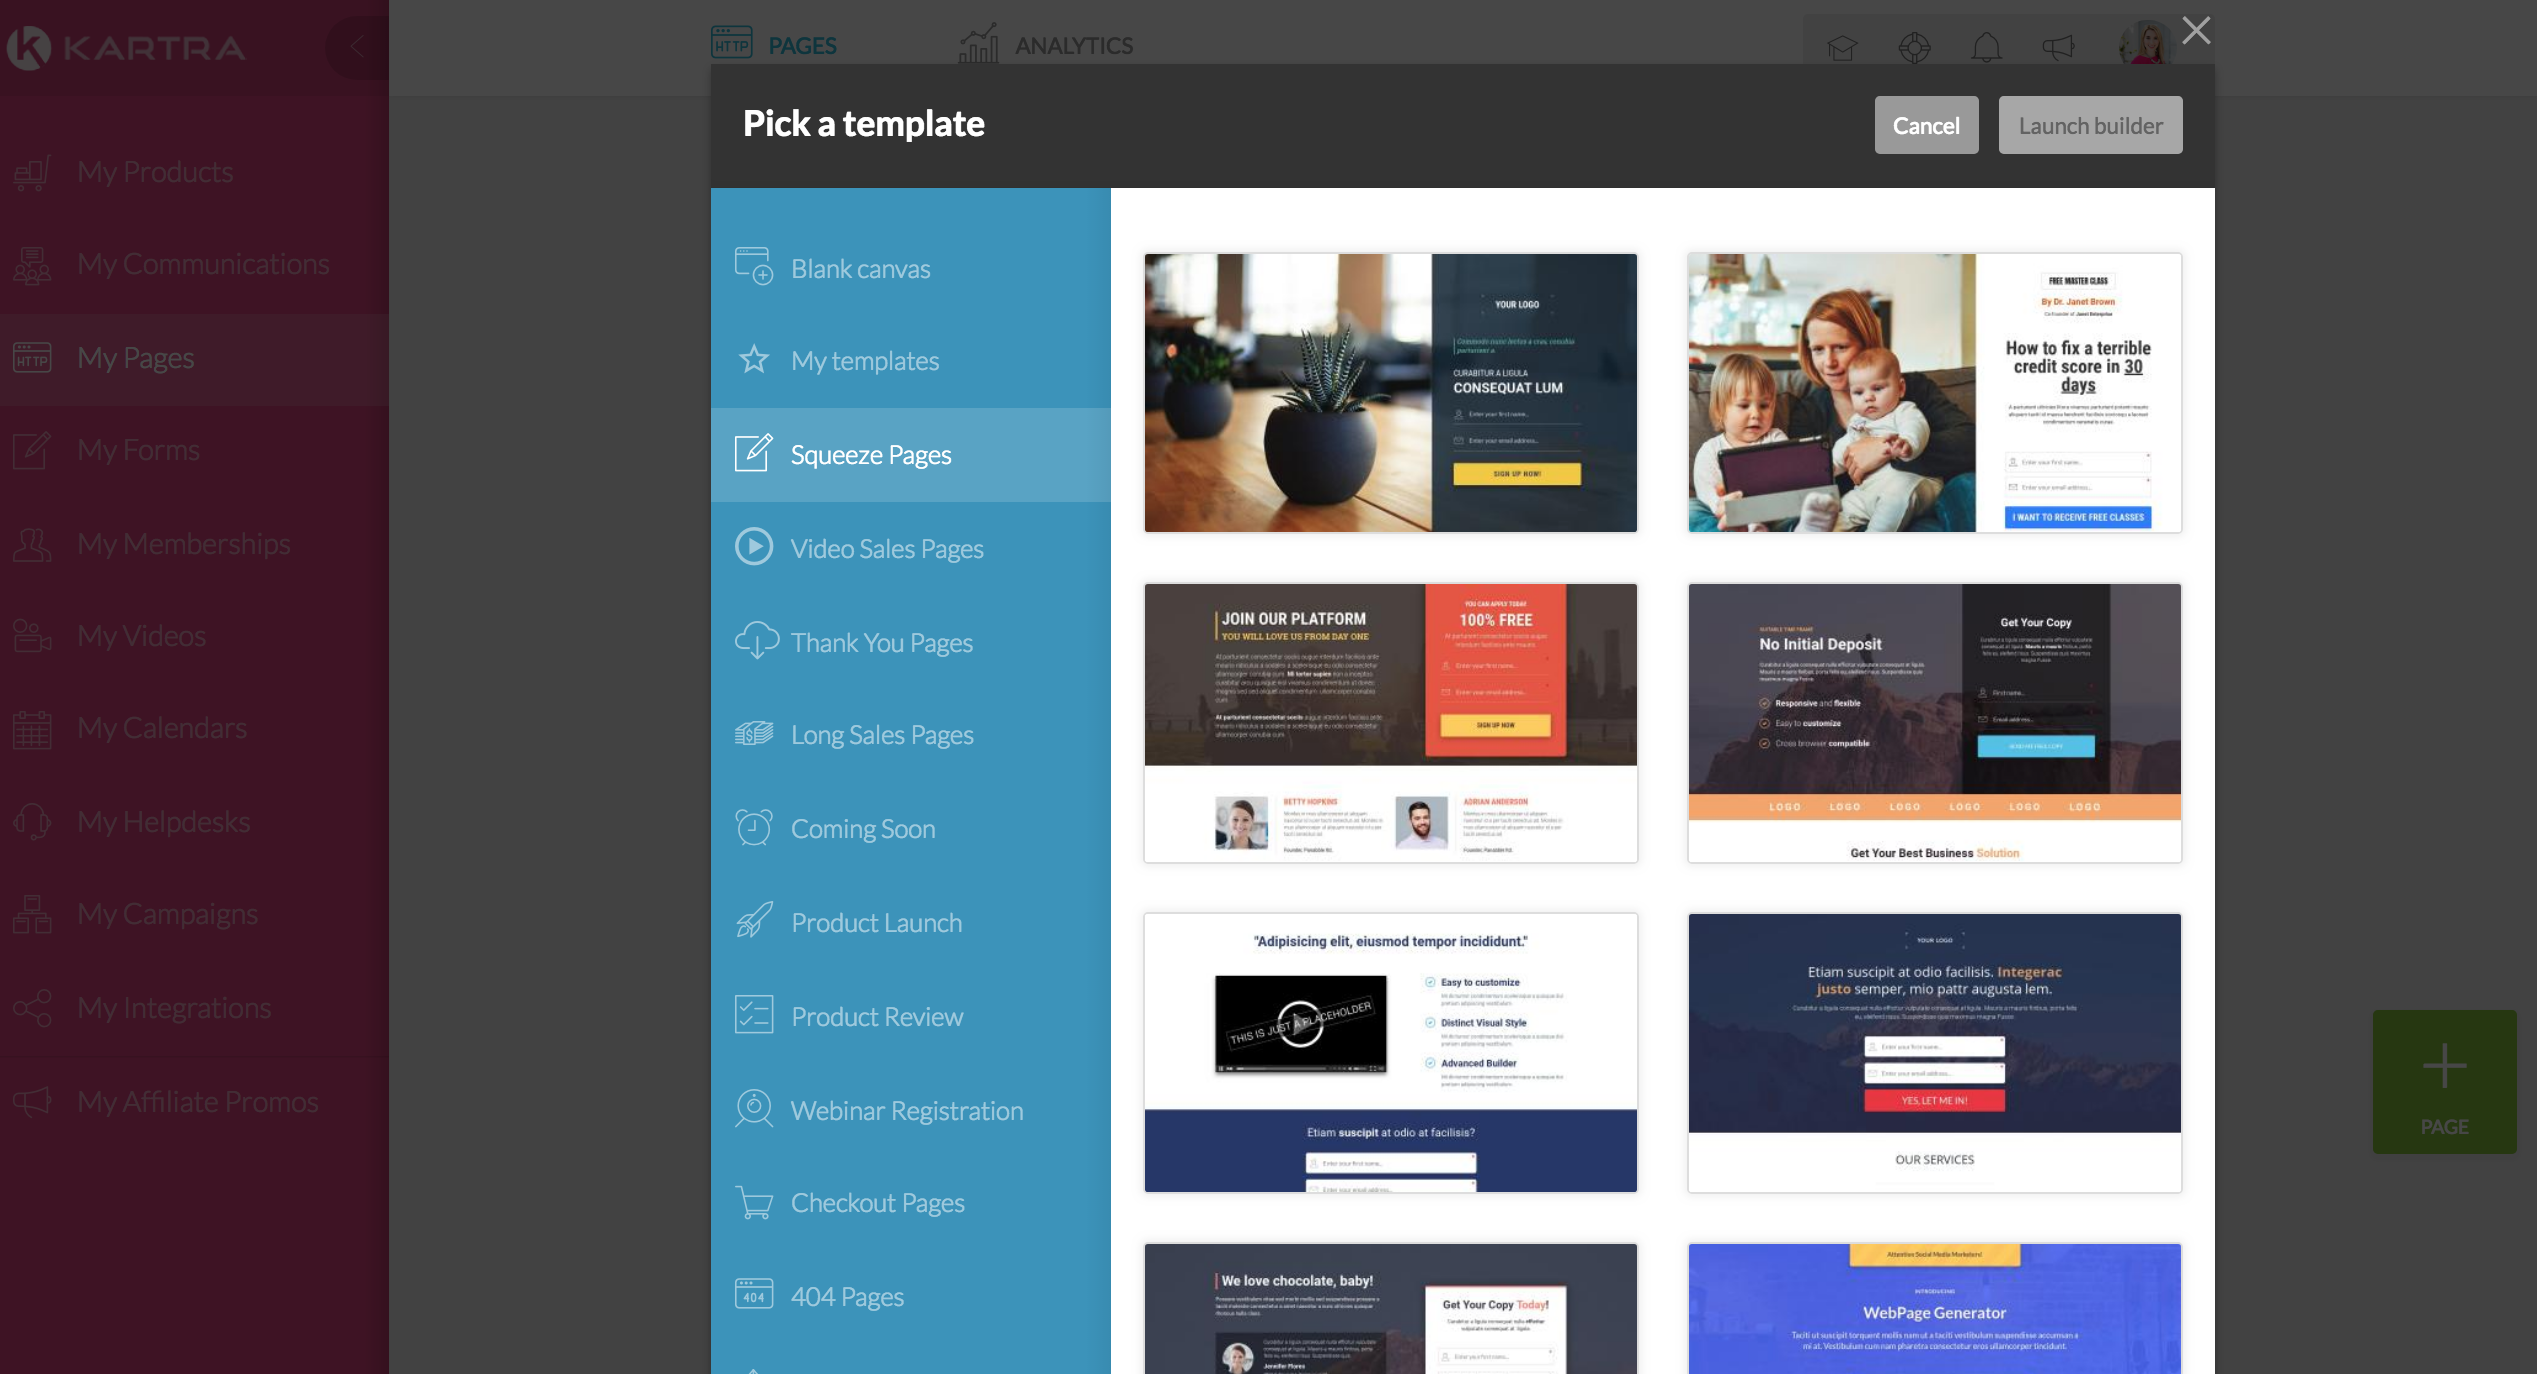 victoria-hockaday-kartra-review-landing-pages-squeeze